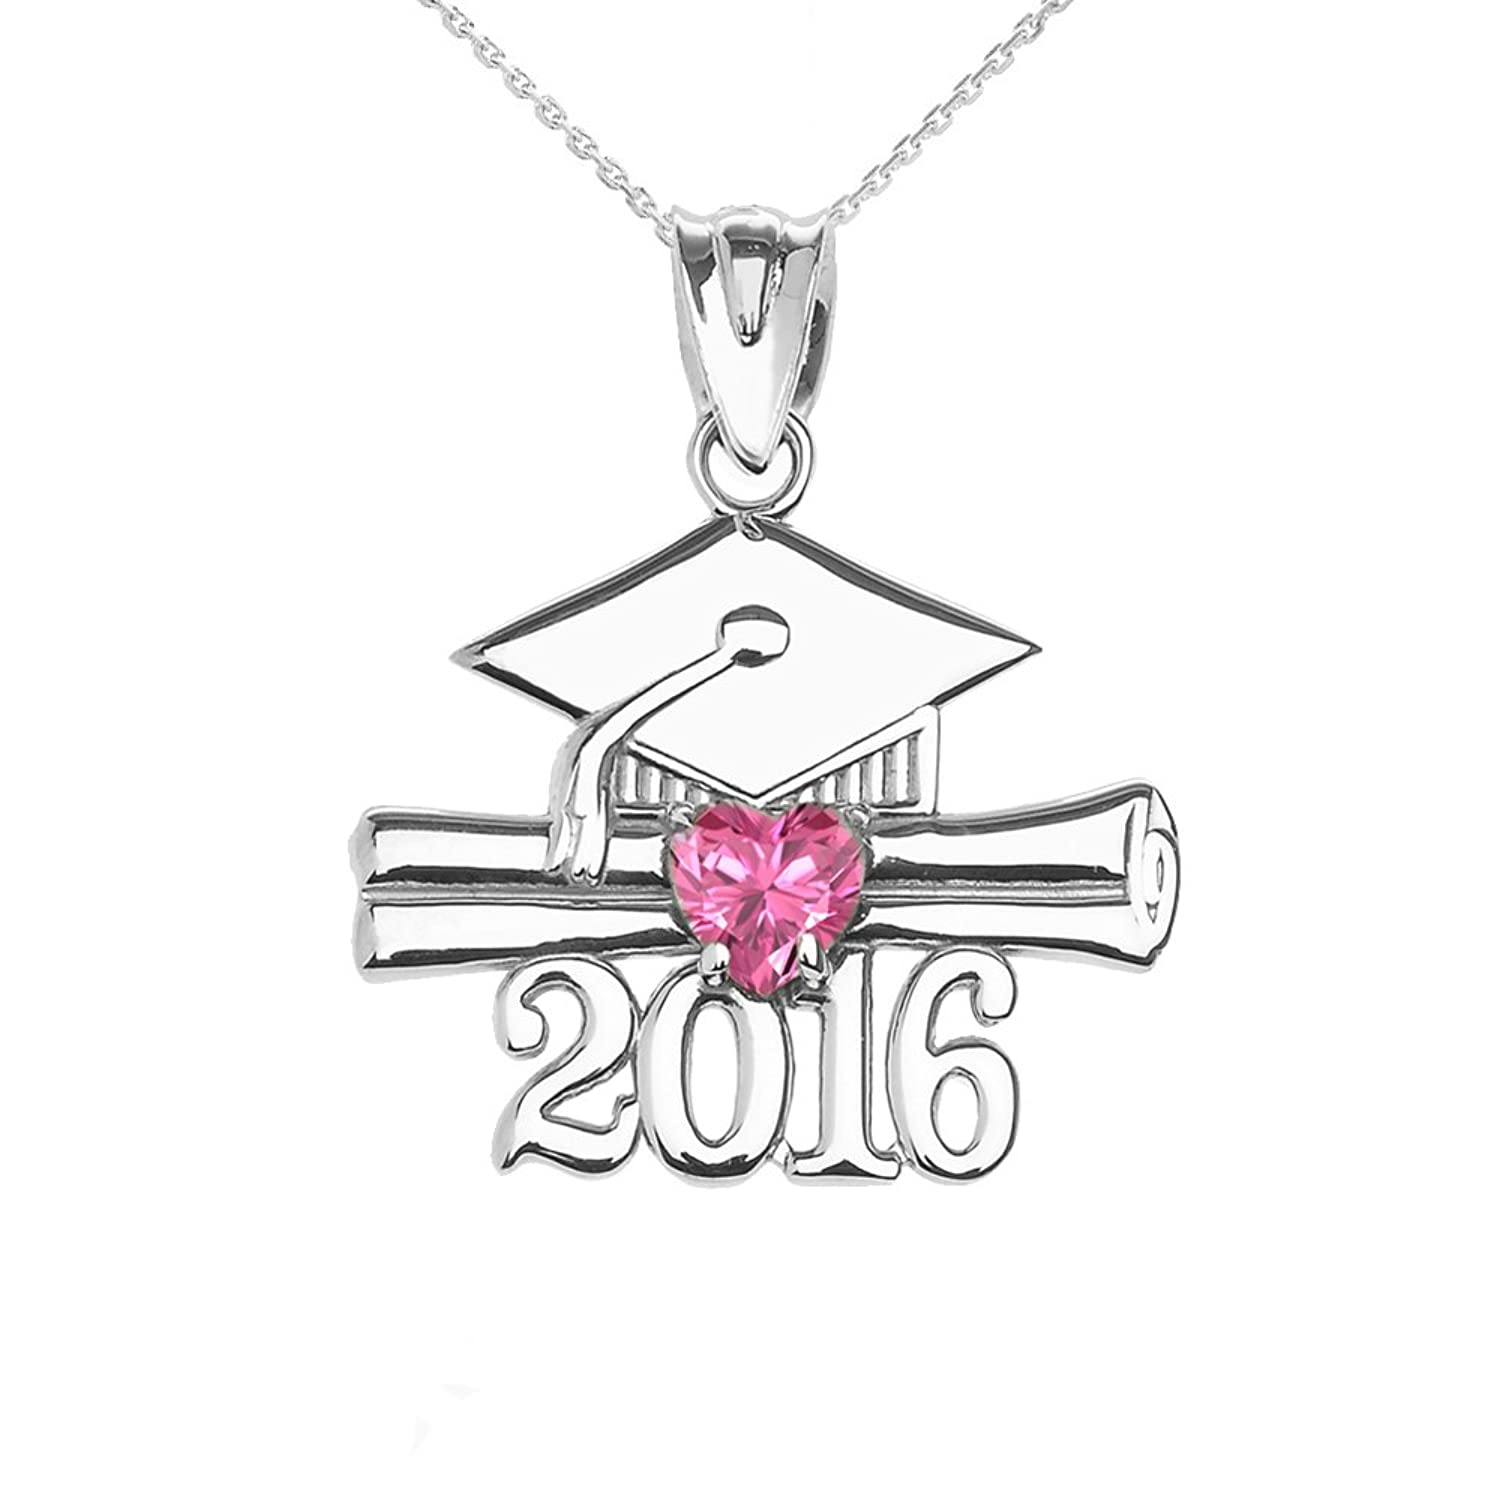 Sterling Silver Heart October Birthstone Class of 2016 Graduation Pendant Necklace